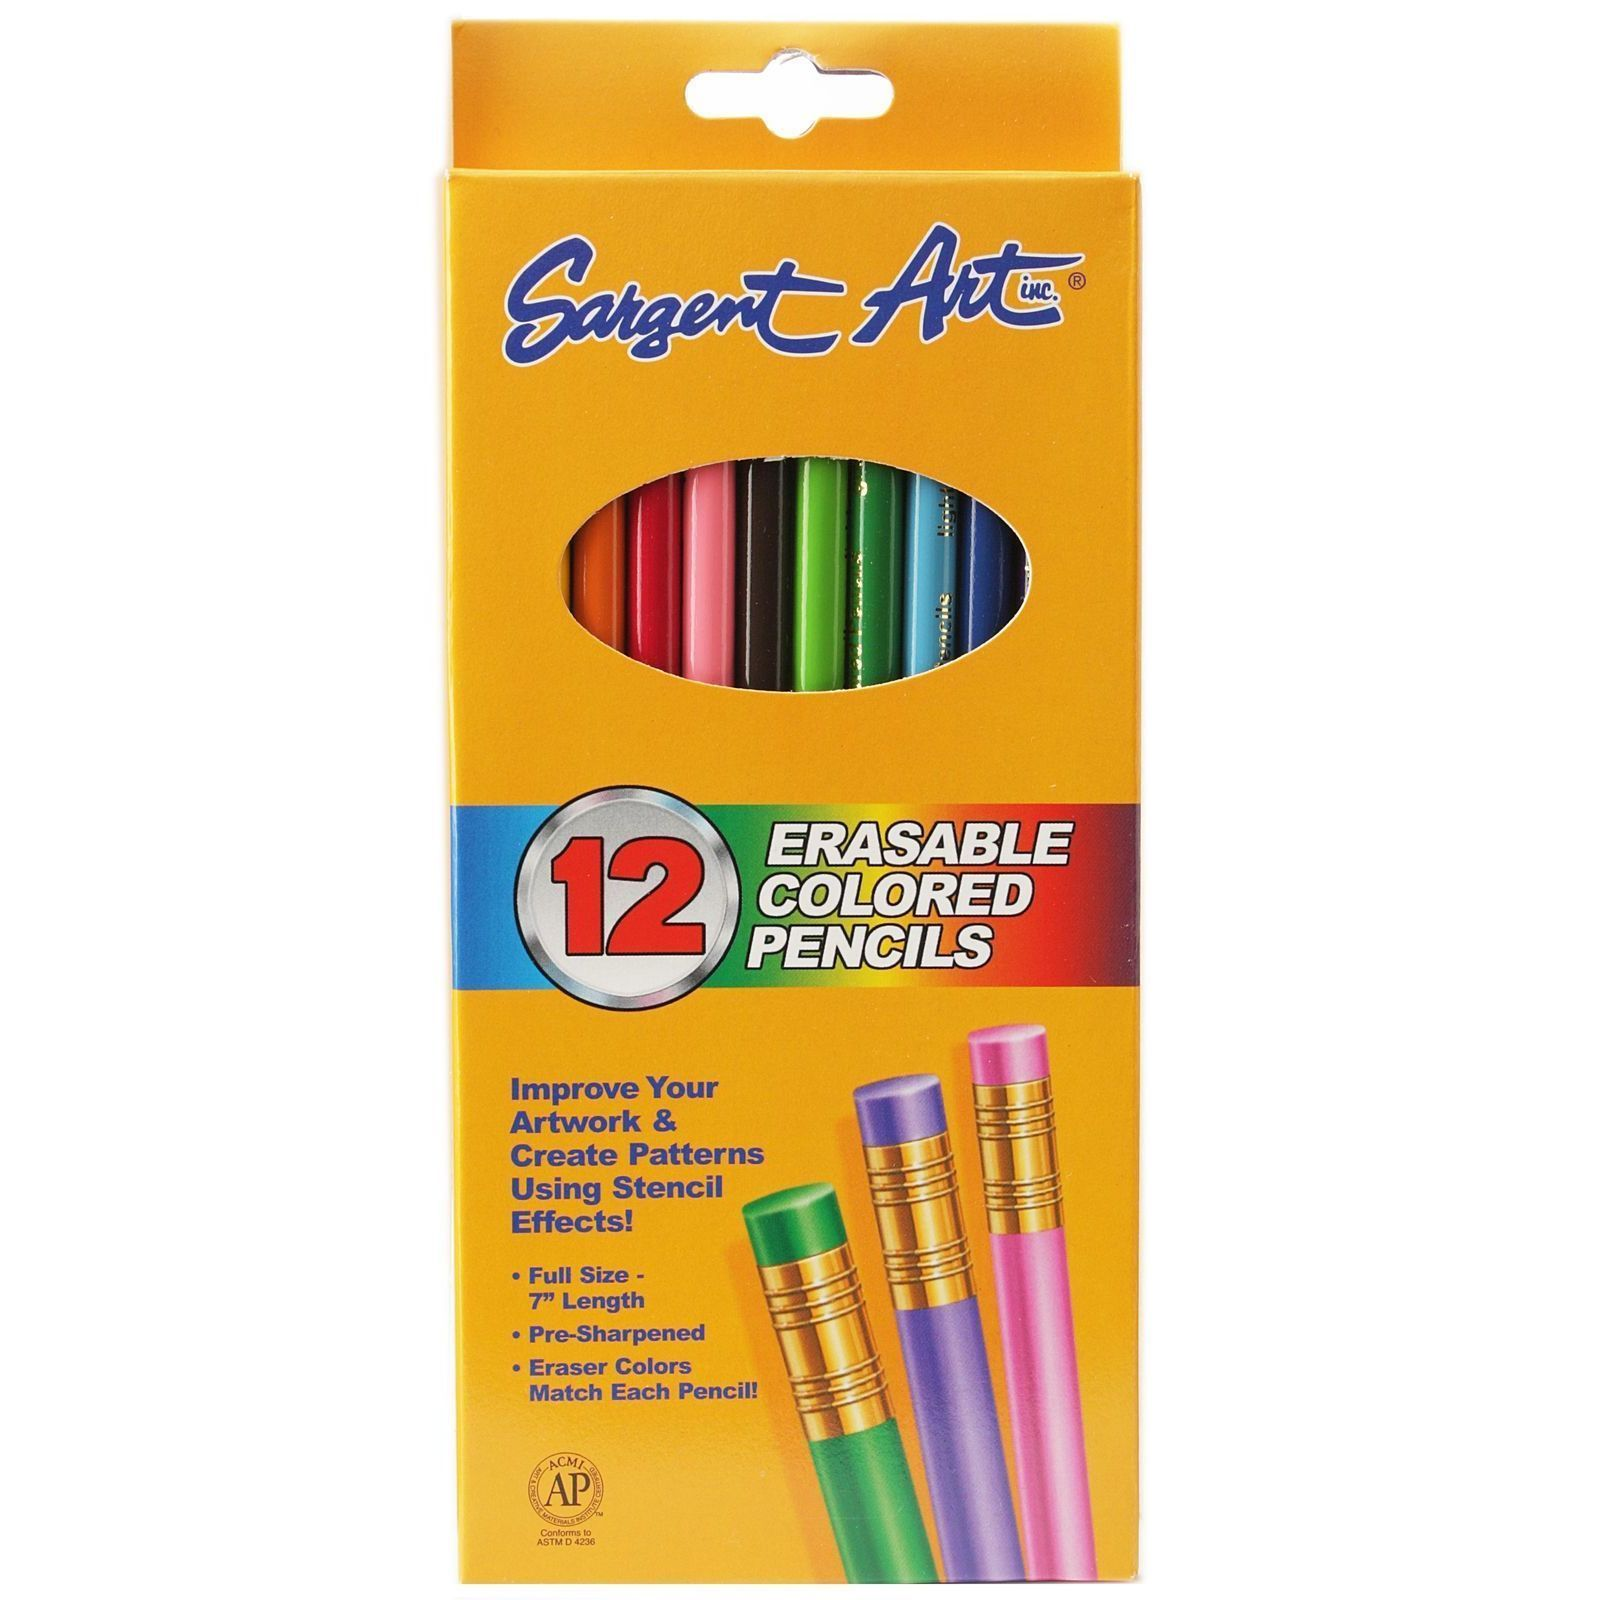 Erasable Colored Pencils pack of 12 (pack of 12)